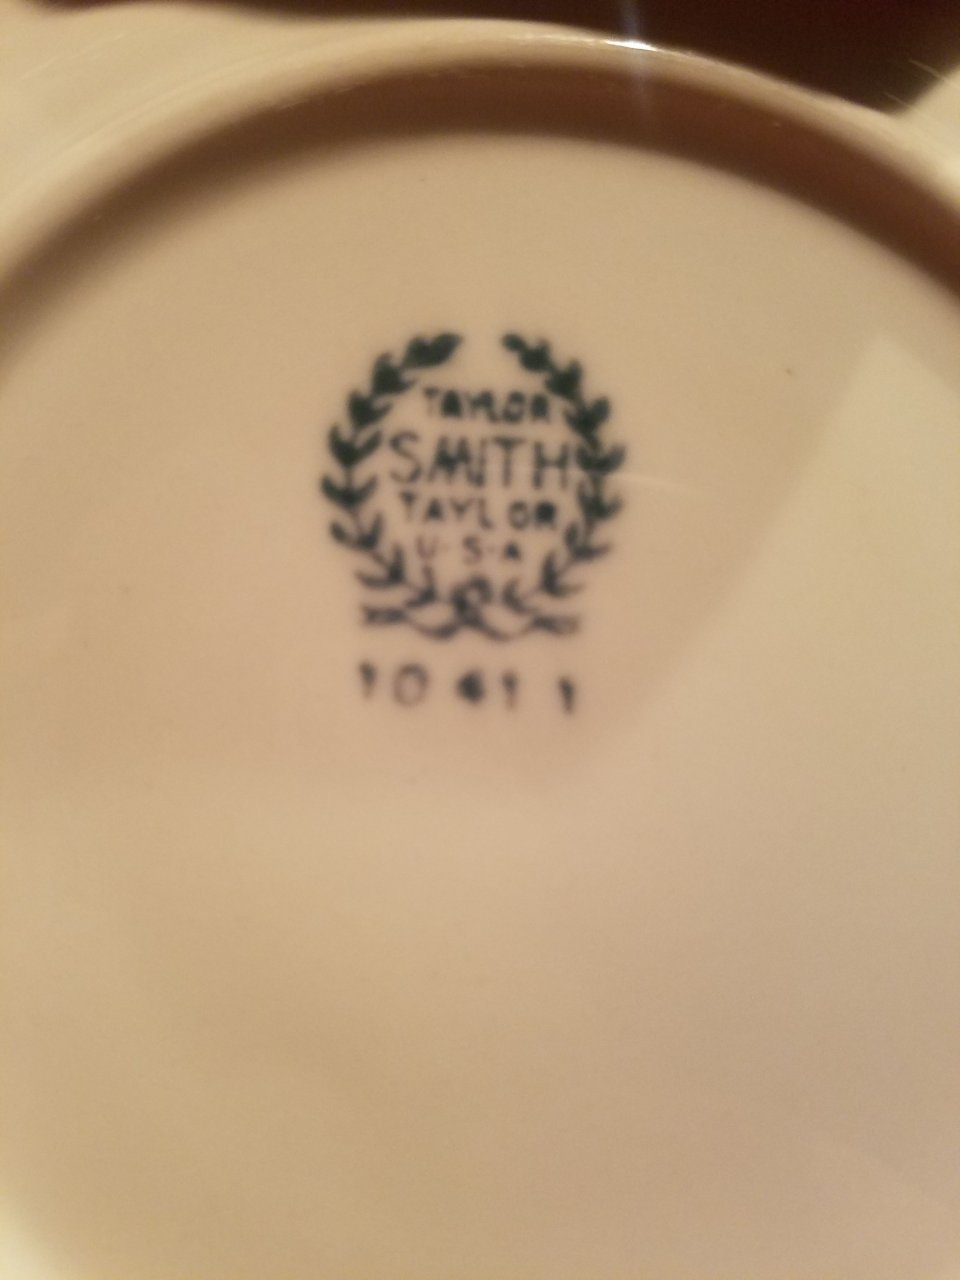 Was Is Value Of My Set For 10 Of Taylor Smith Dishes The Stamp On Back Says Artifact Collectors